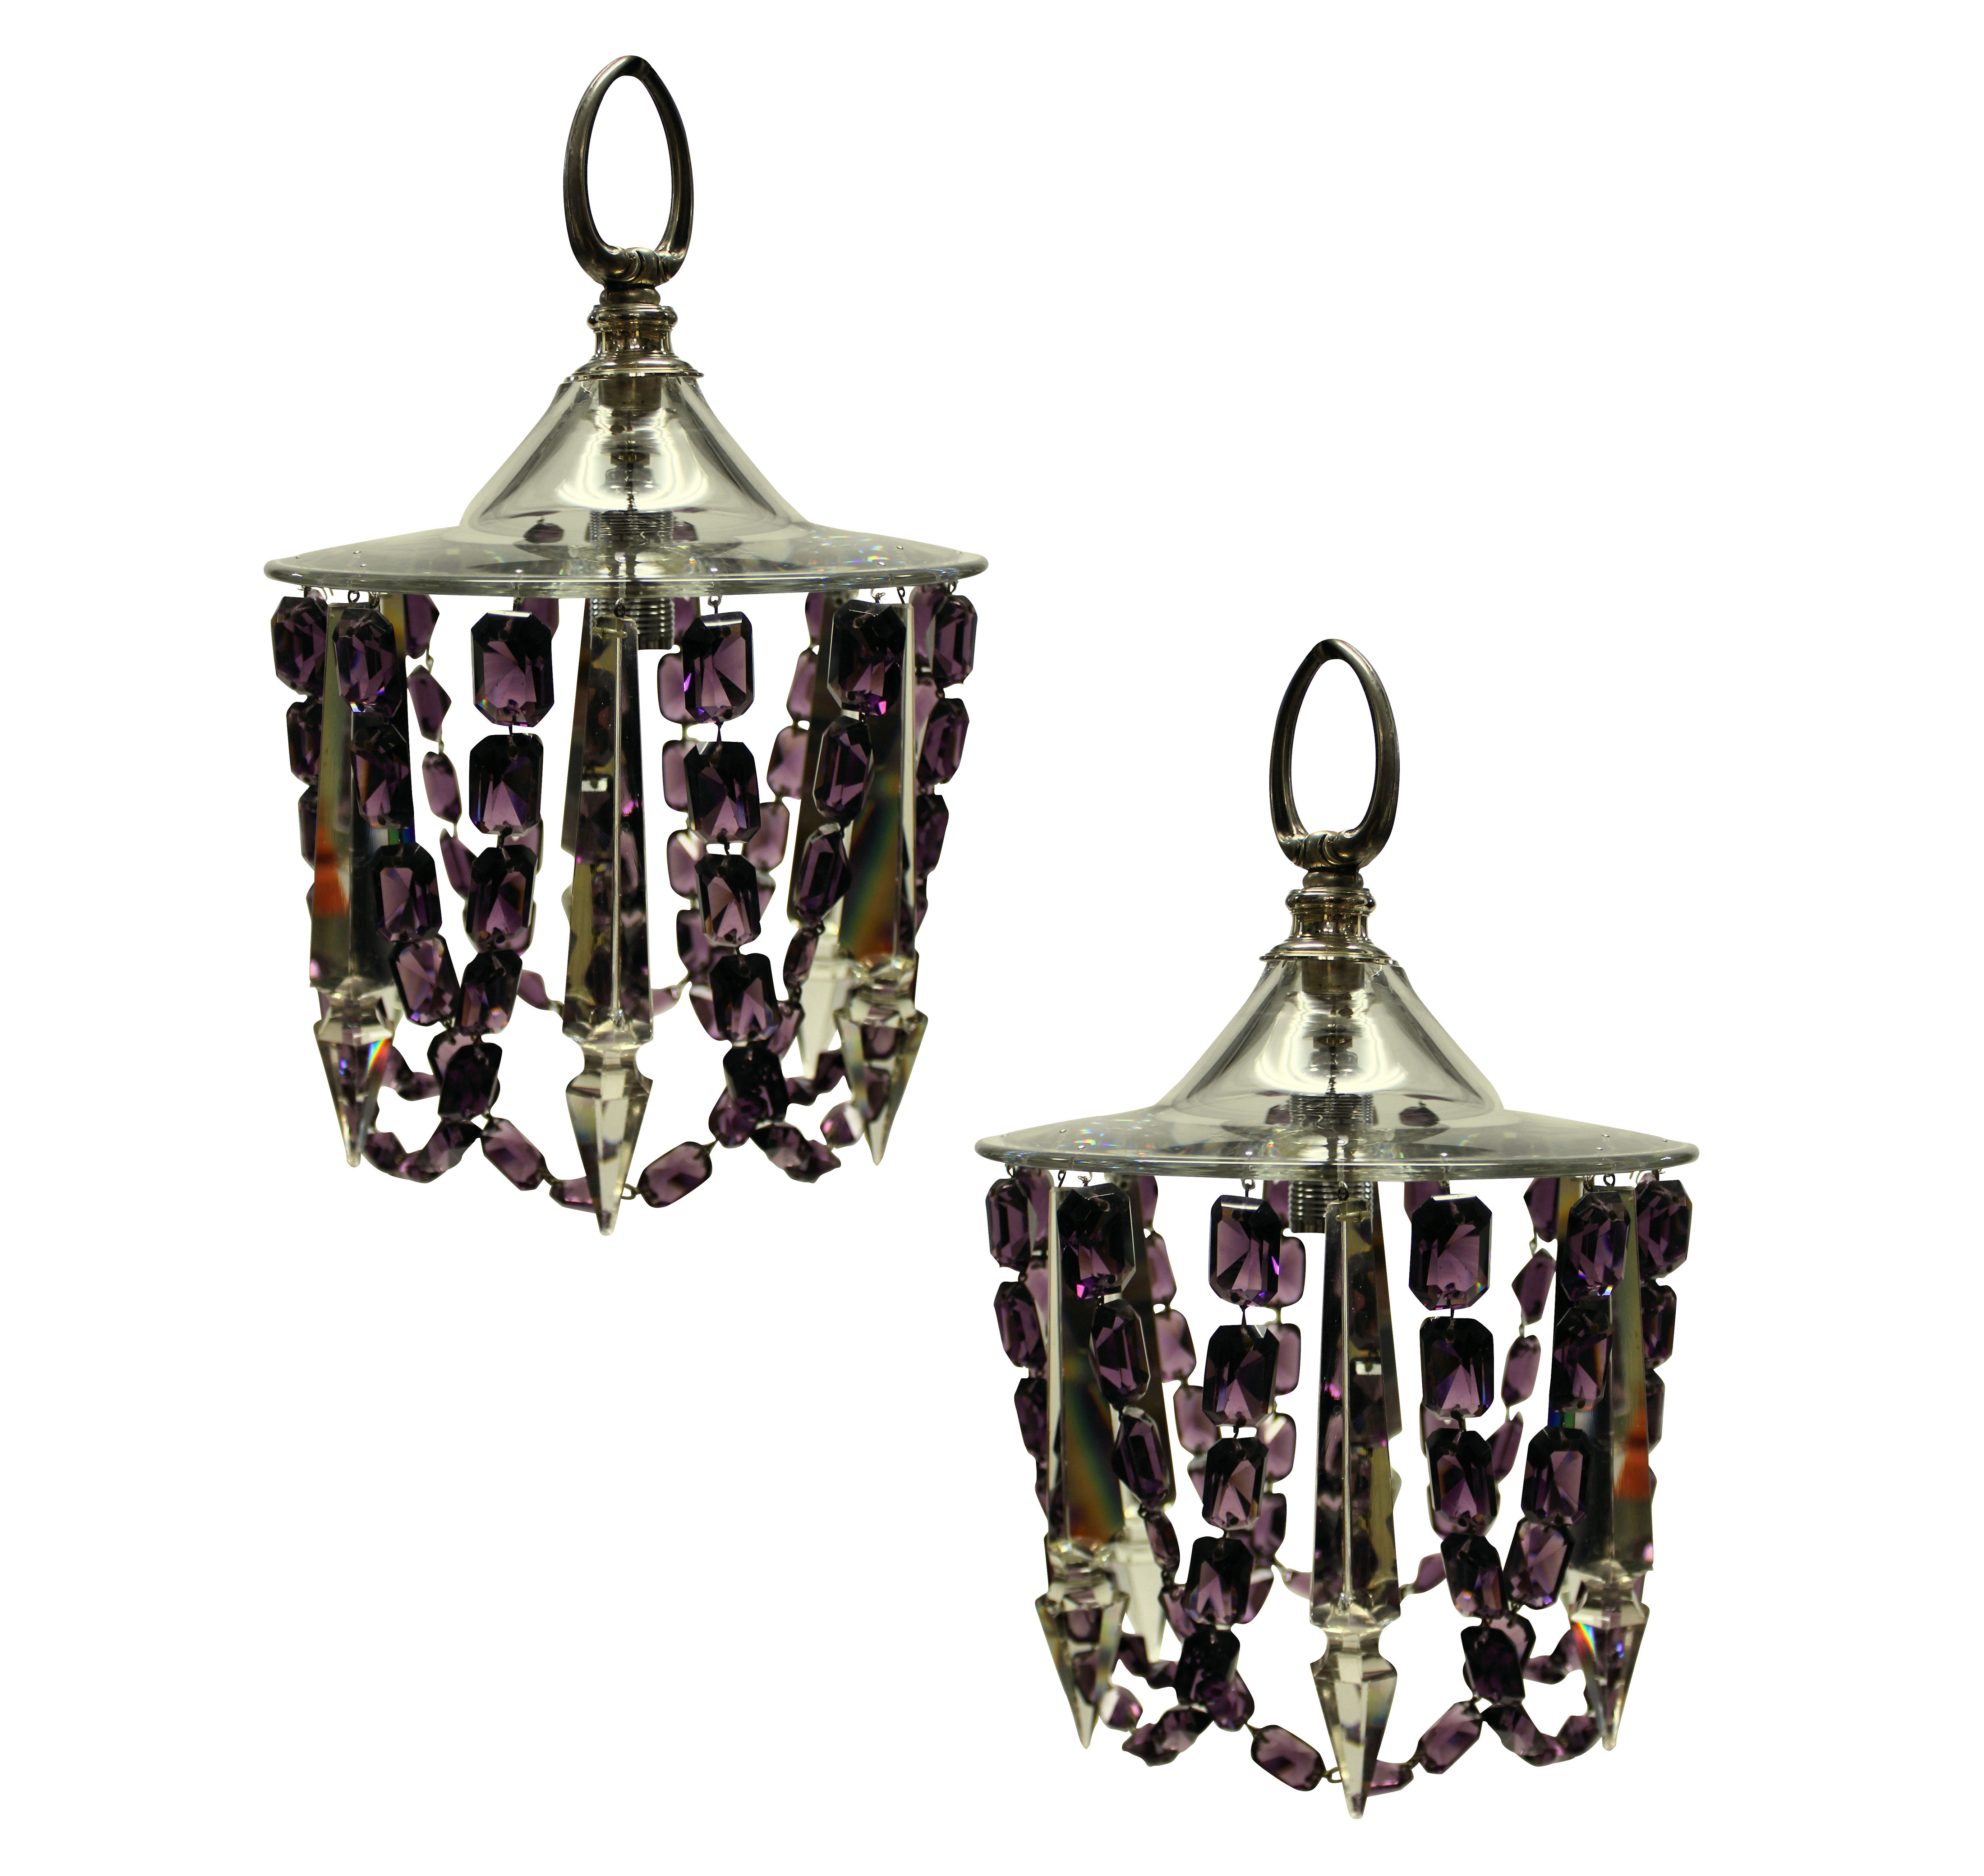 A PAIR OF SMALL CUT GLASS CEILING LIGHTS IN AMETHYST